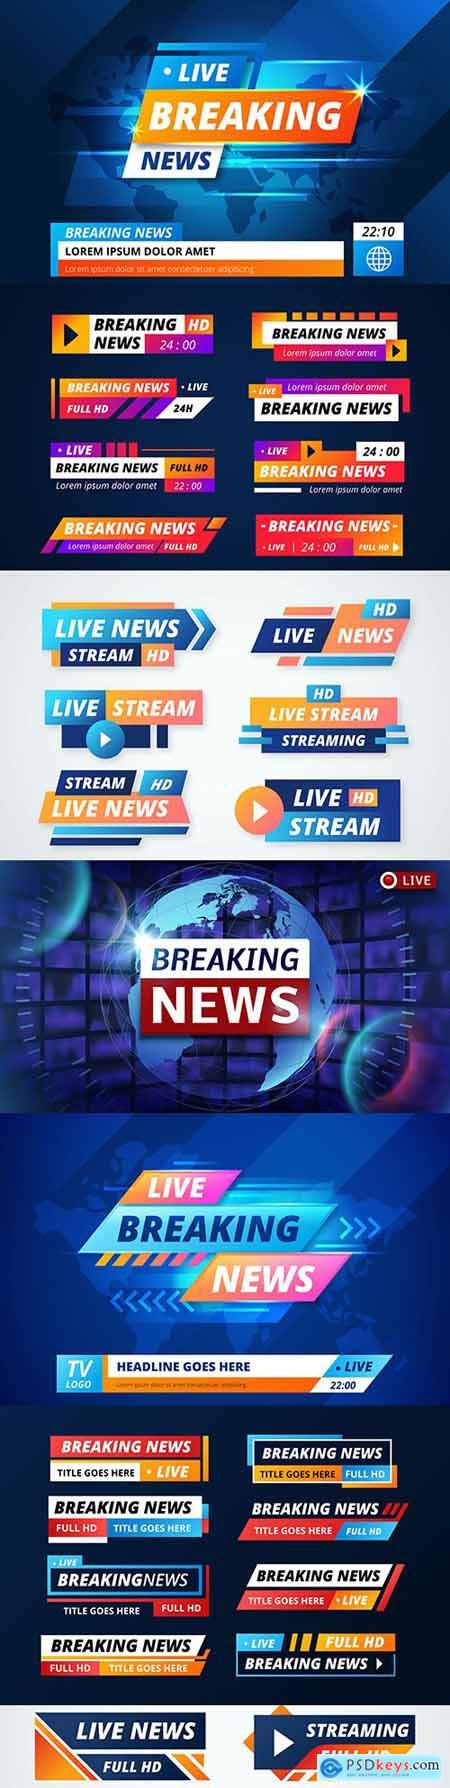 Top news live broadcast banners futuristic background